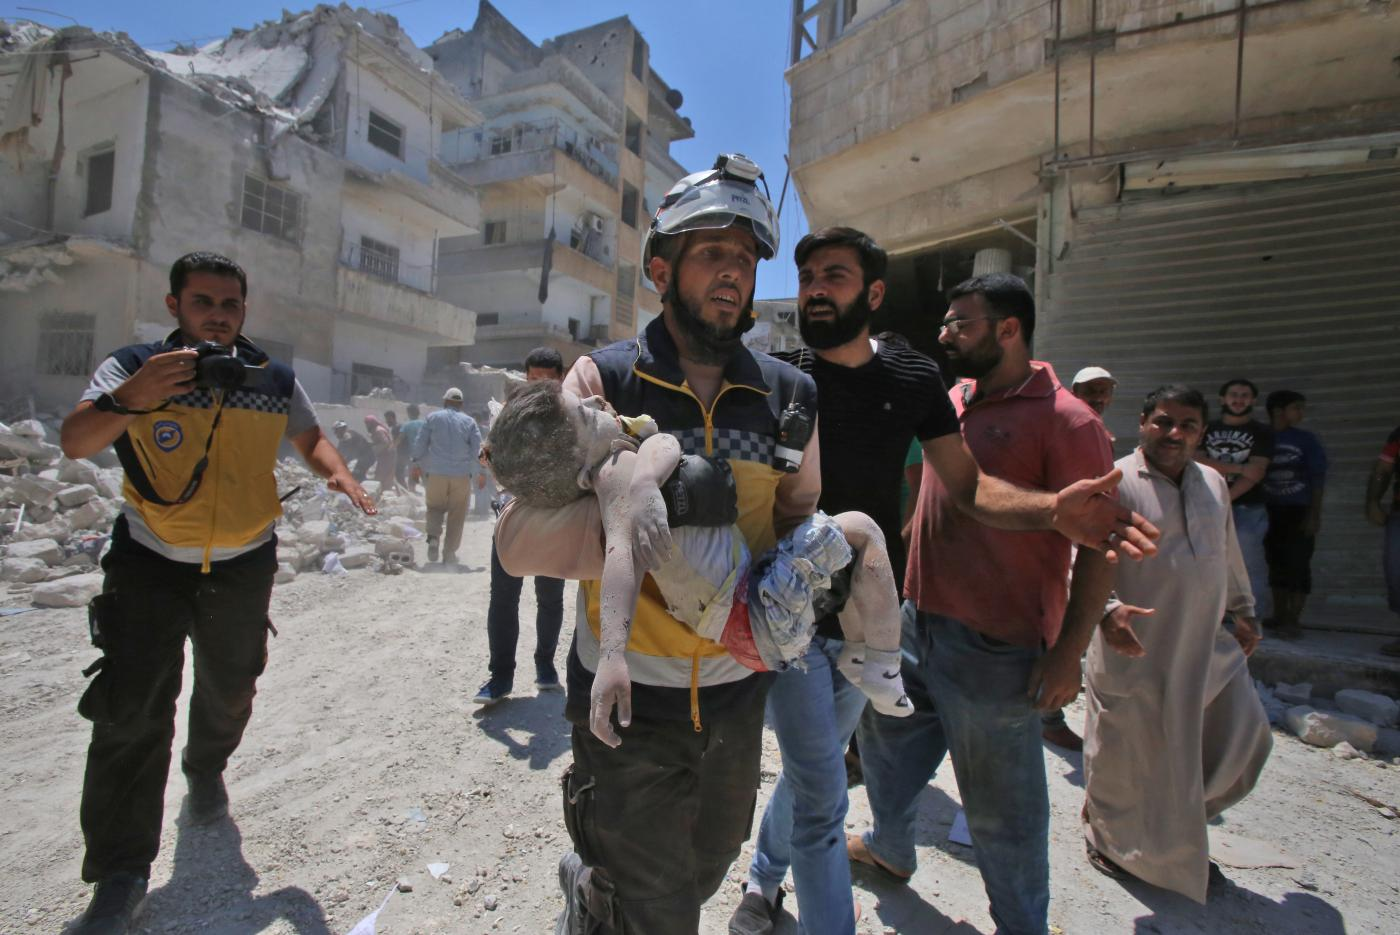 Syria's hospitals bombed: UN Security Council calls for inquiry